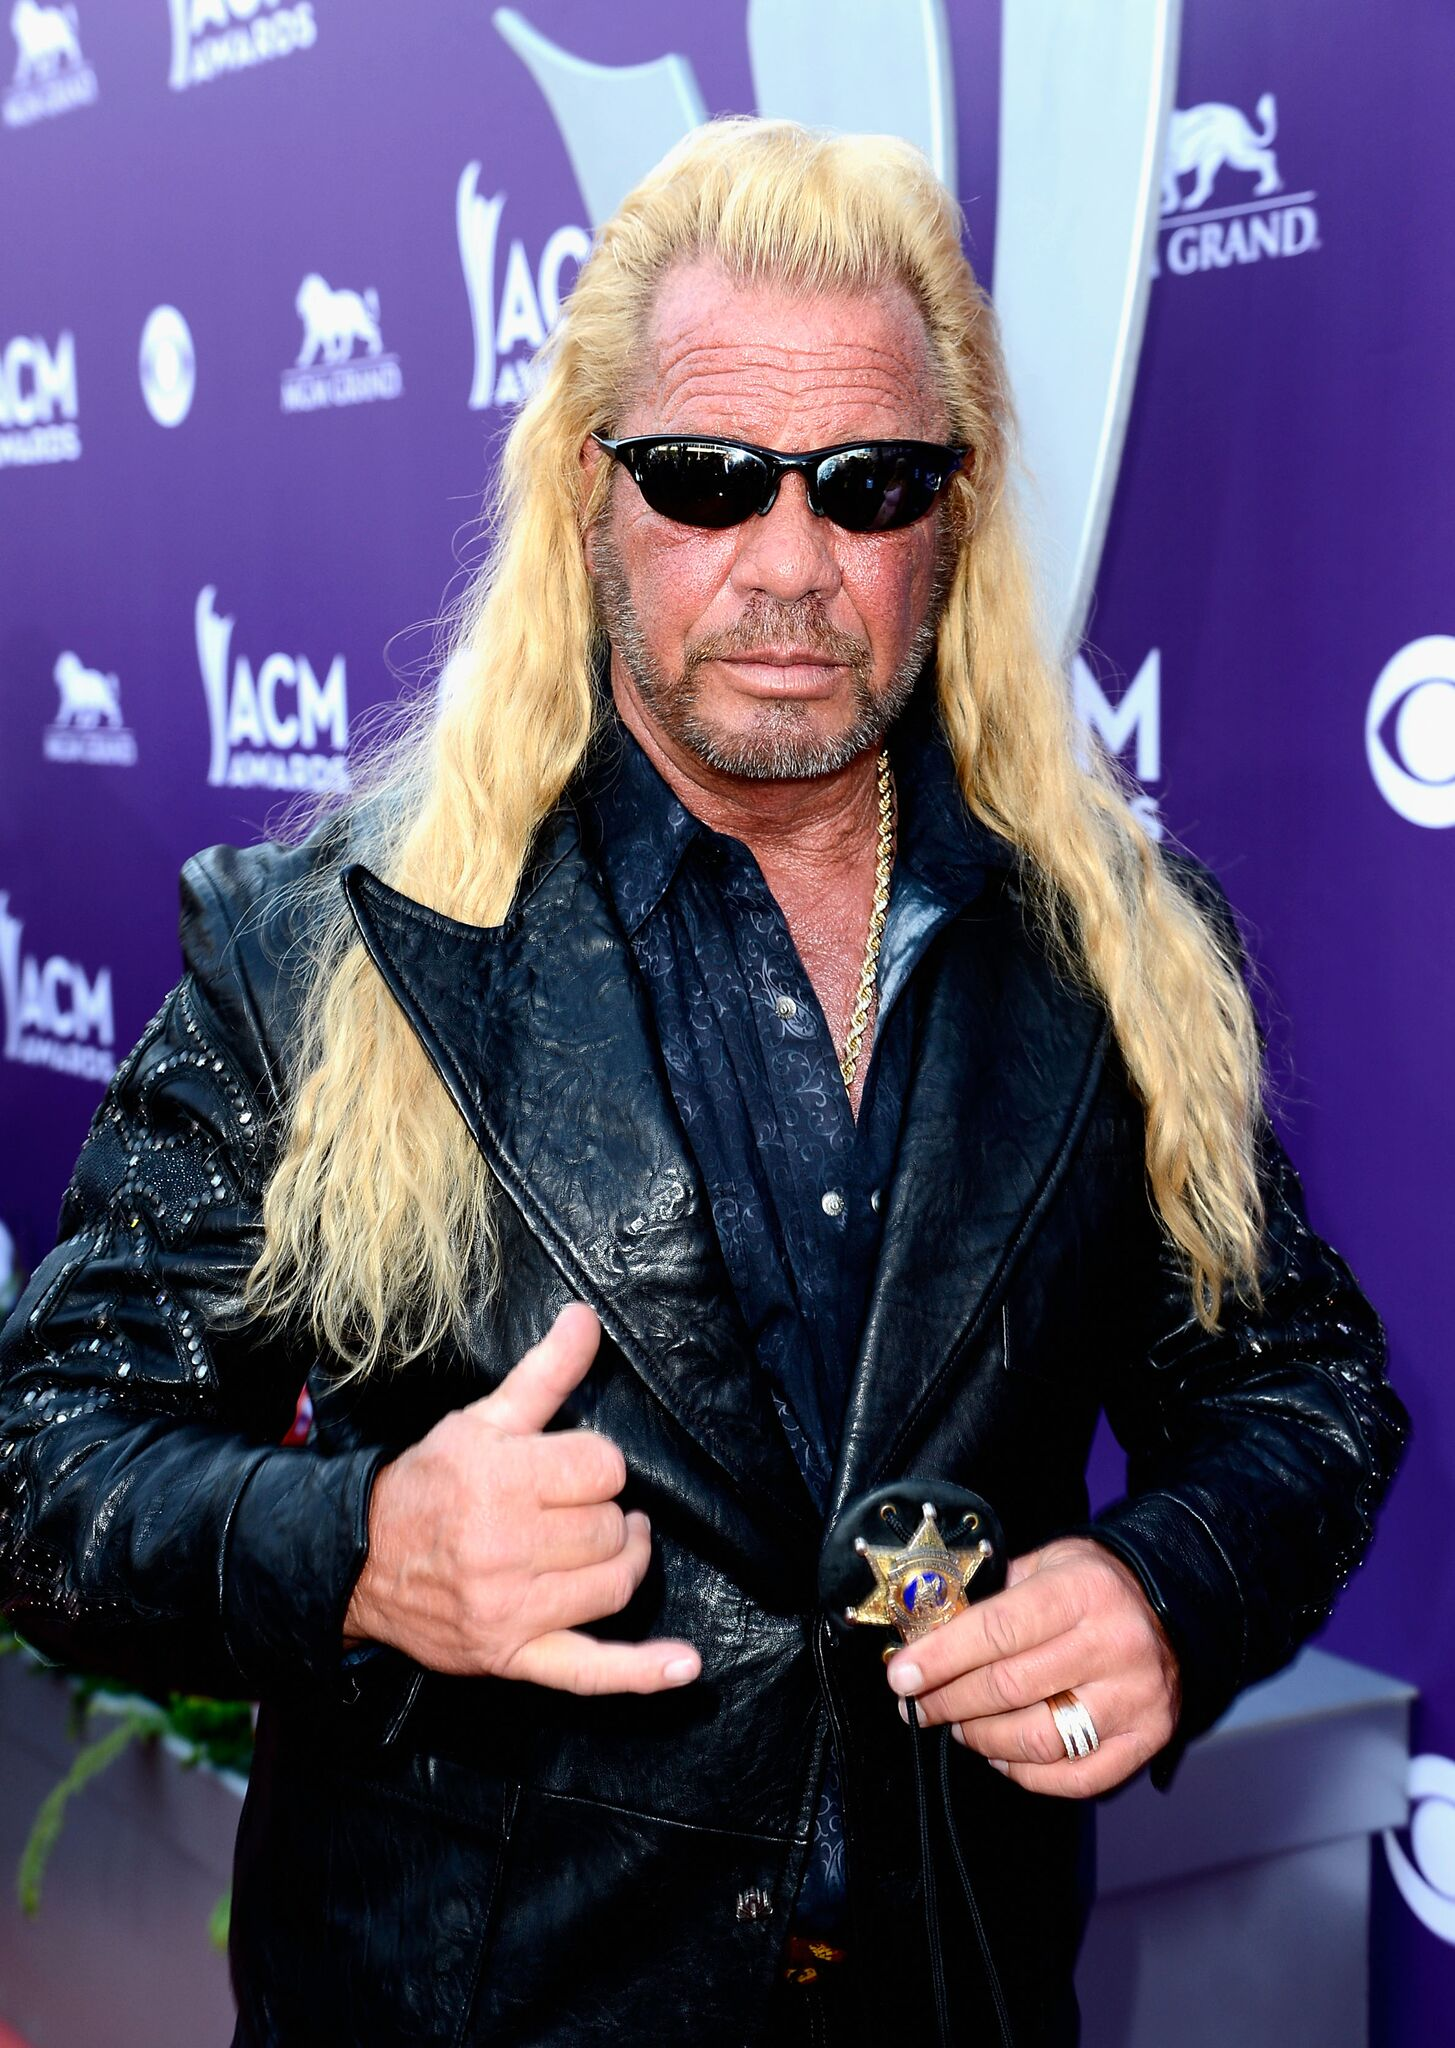 TV personality Dog the Bounty Hunter arrives at the 48th Annual Academy of Country Music Awards at the MGM Grand Garden Arena | Getty Images / Global Images Ukraine